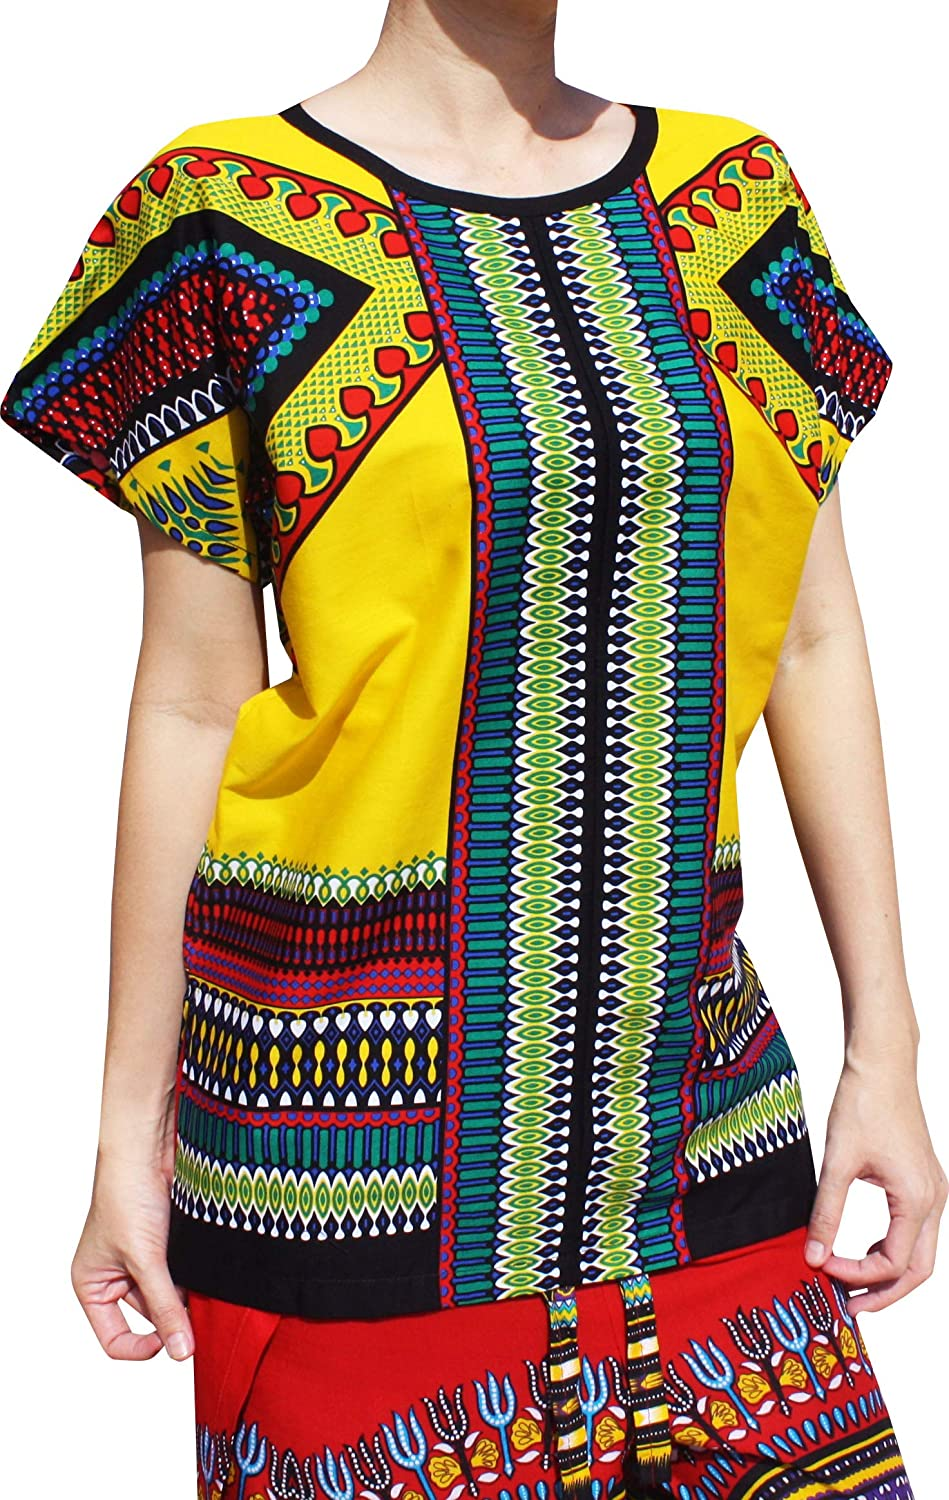 Safety Yellow RaanPahMuang Bright Arrowhead African Dashiki Traditional Cut Front Collar Shirt